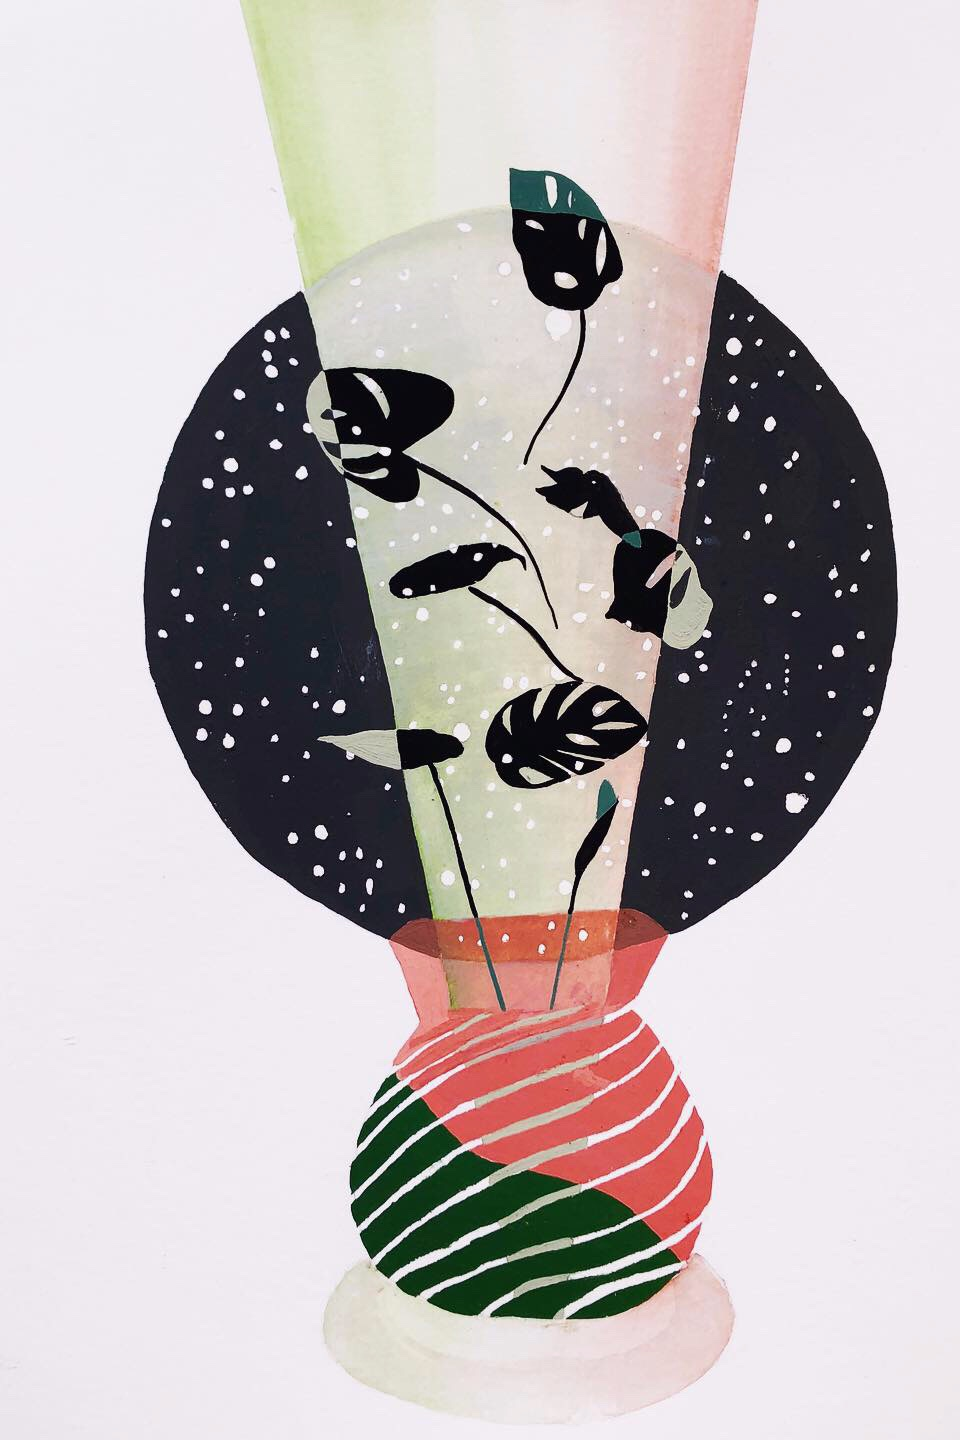 cosmic philodendron, 2019, gouache and watercolor on paper